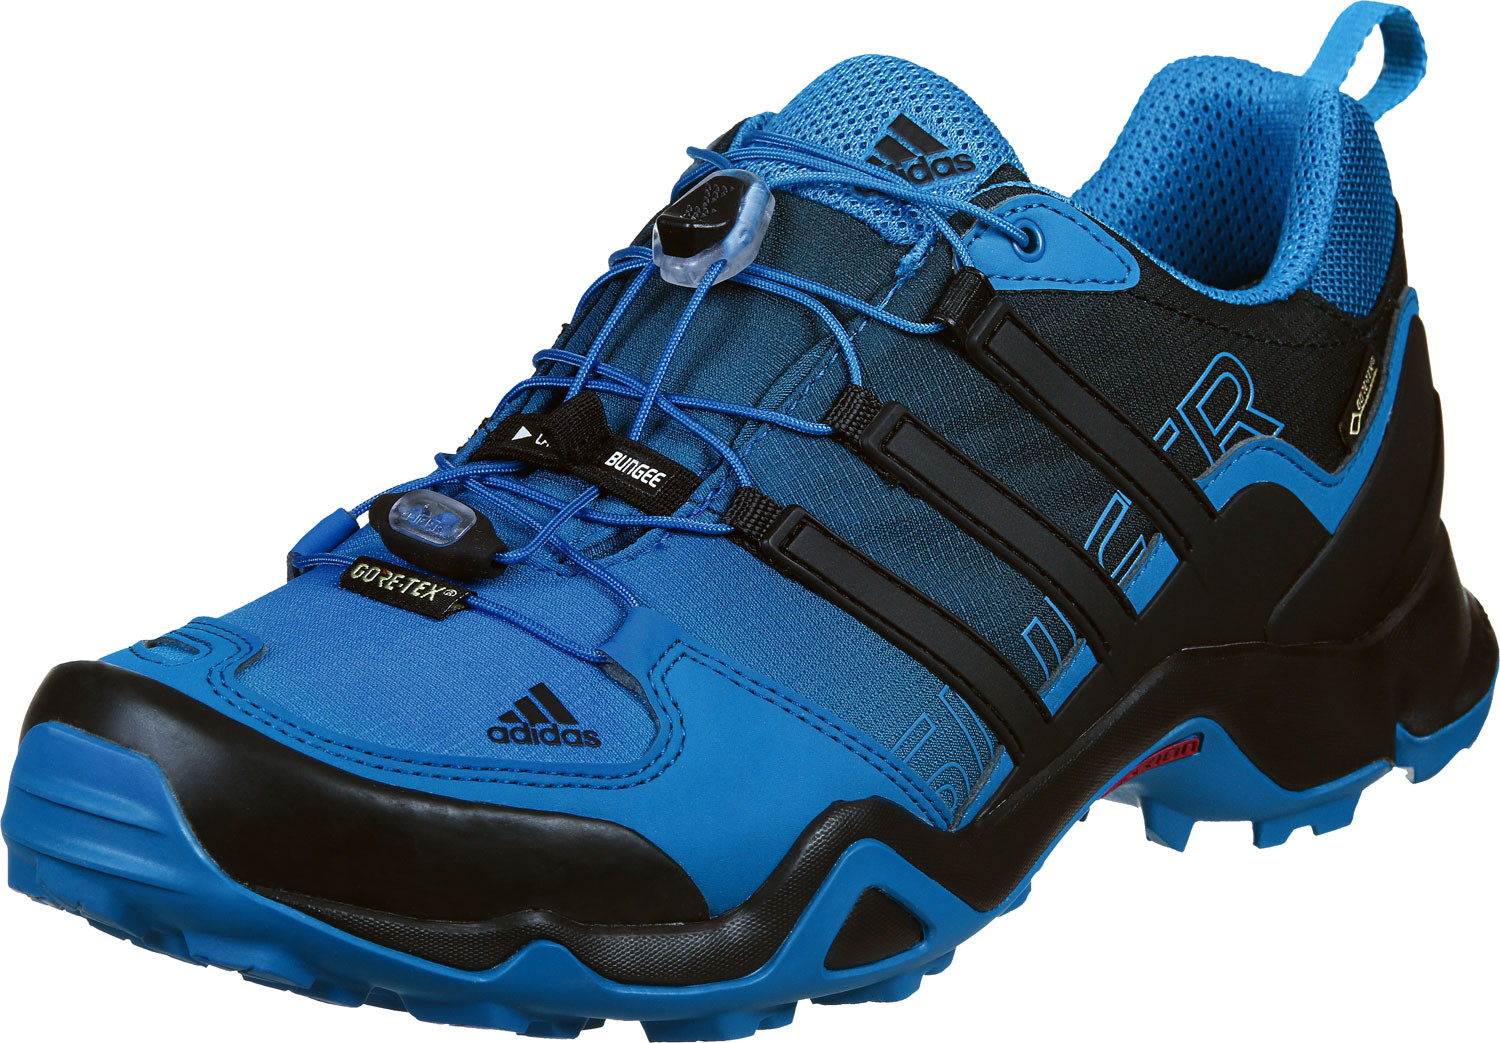 Adidas Terrex Swift R Gtx Hombre Perfecto Adidas Terrex Swift R Gtx Hiking Shoes Blue Black Of Adidas Terrex Swift R Gtx Hombre Brillante Adidas Terrex Swift R Mid Gtx Calzado Hombre Azul